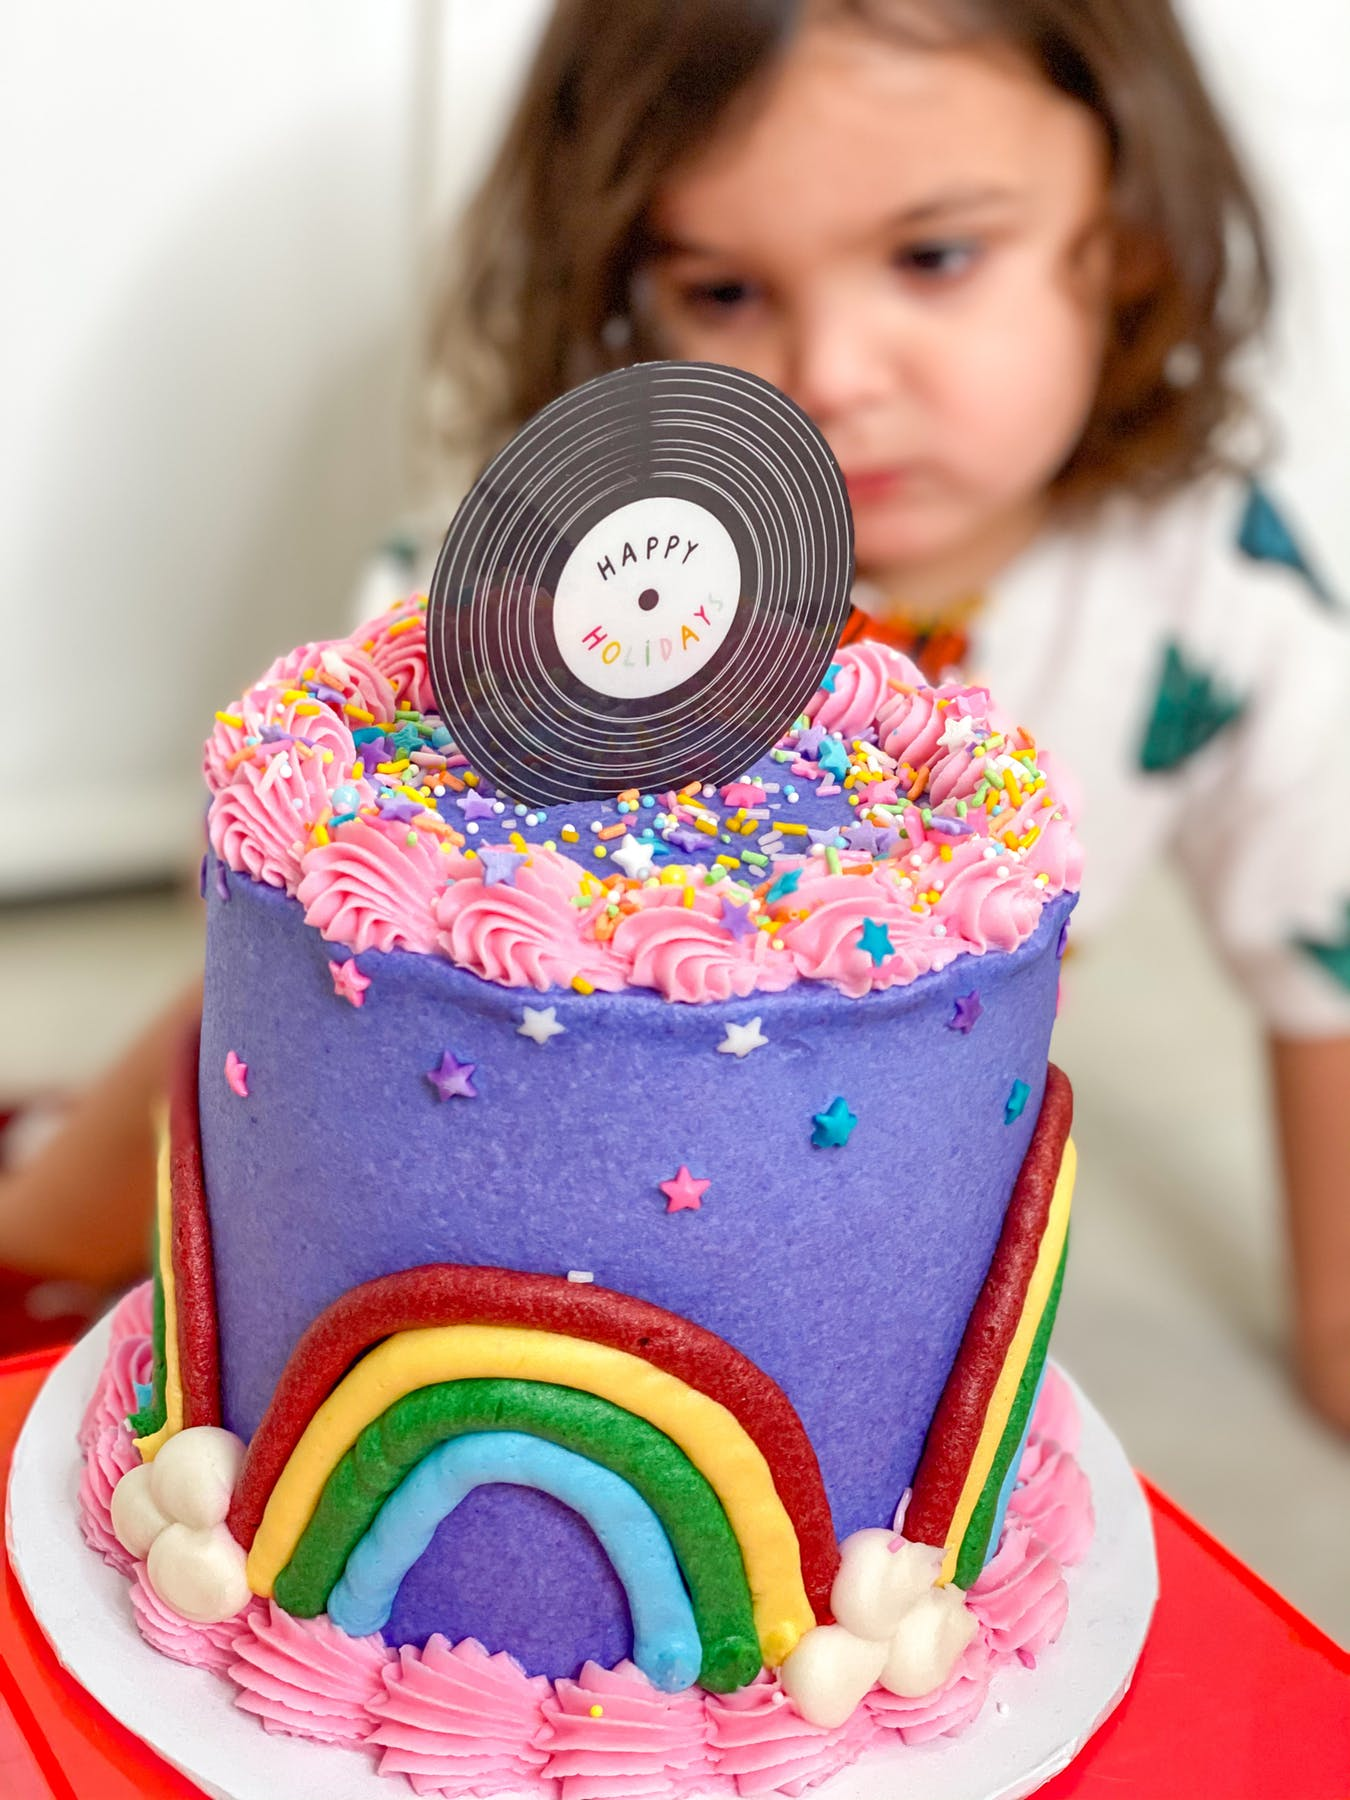 a person holding a birthday cake